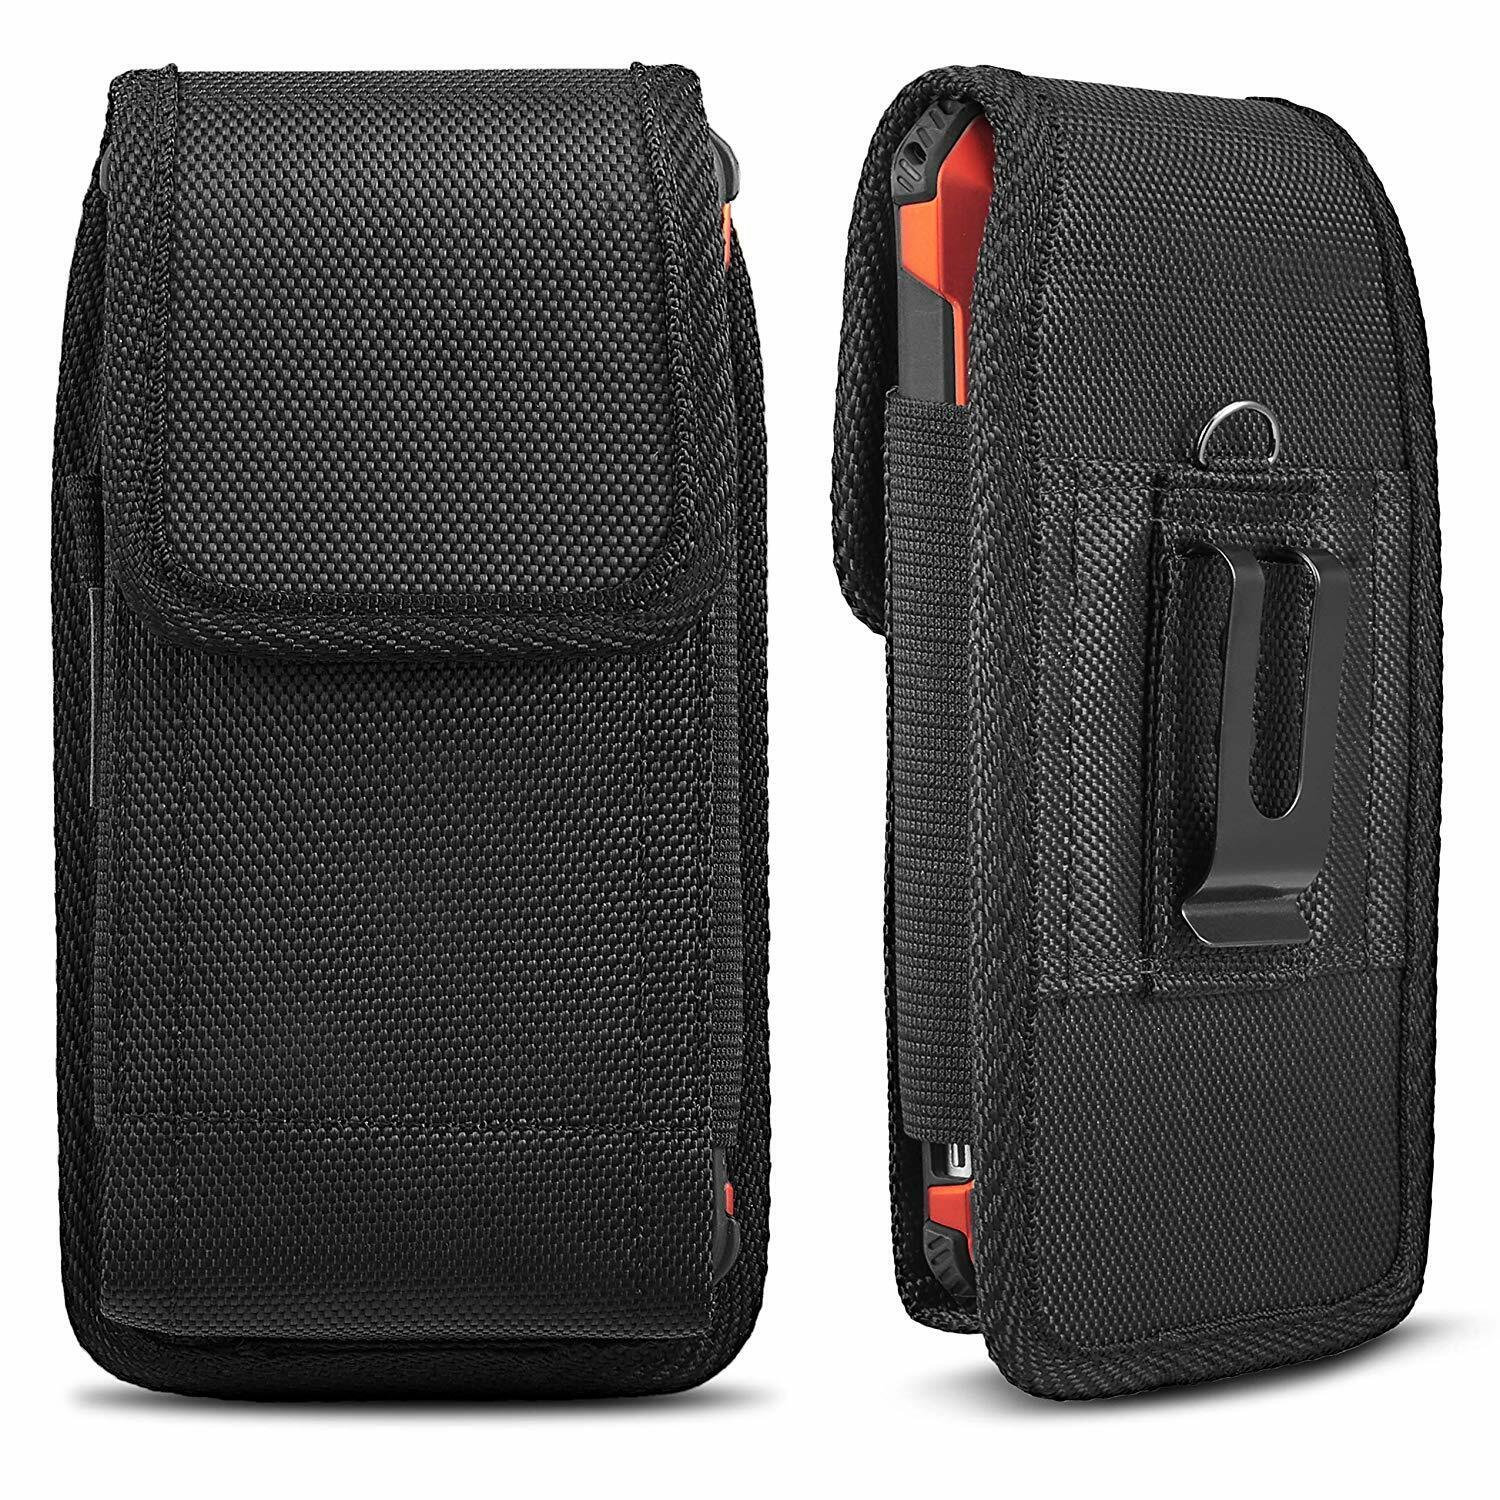 Vertical Holster Belt Clip Carrying Case Pouch for iPhone